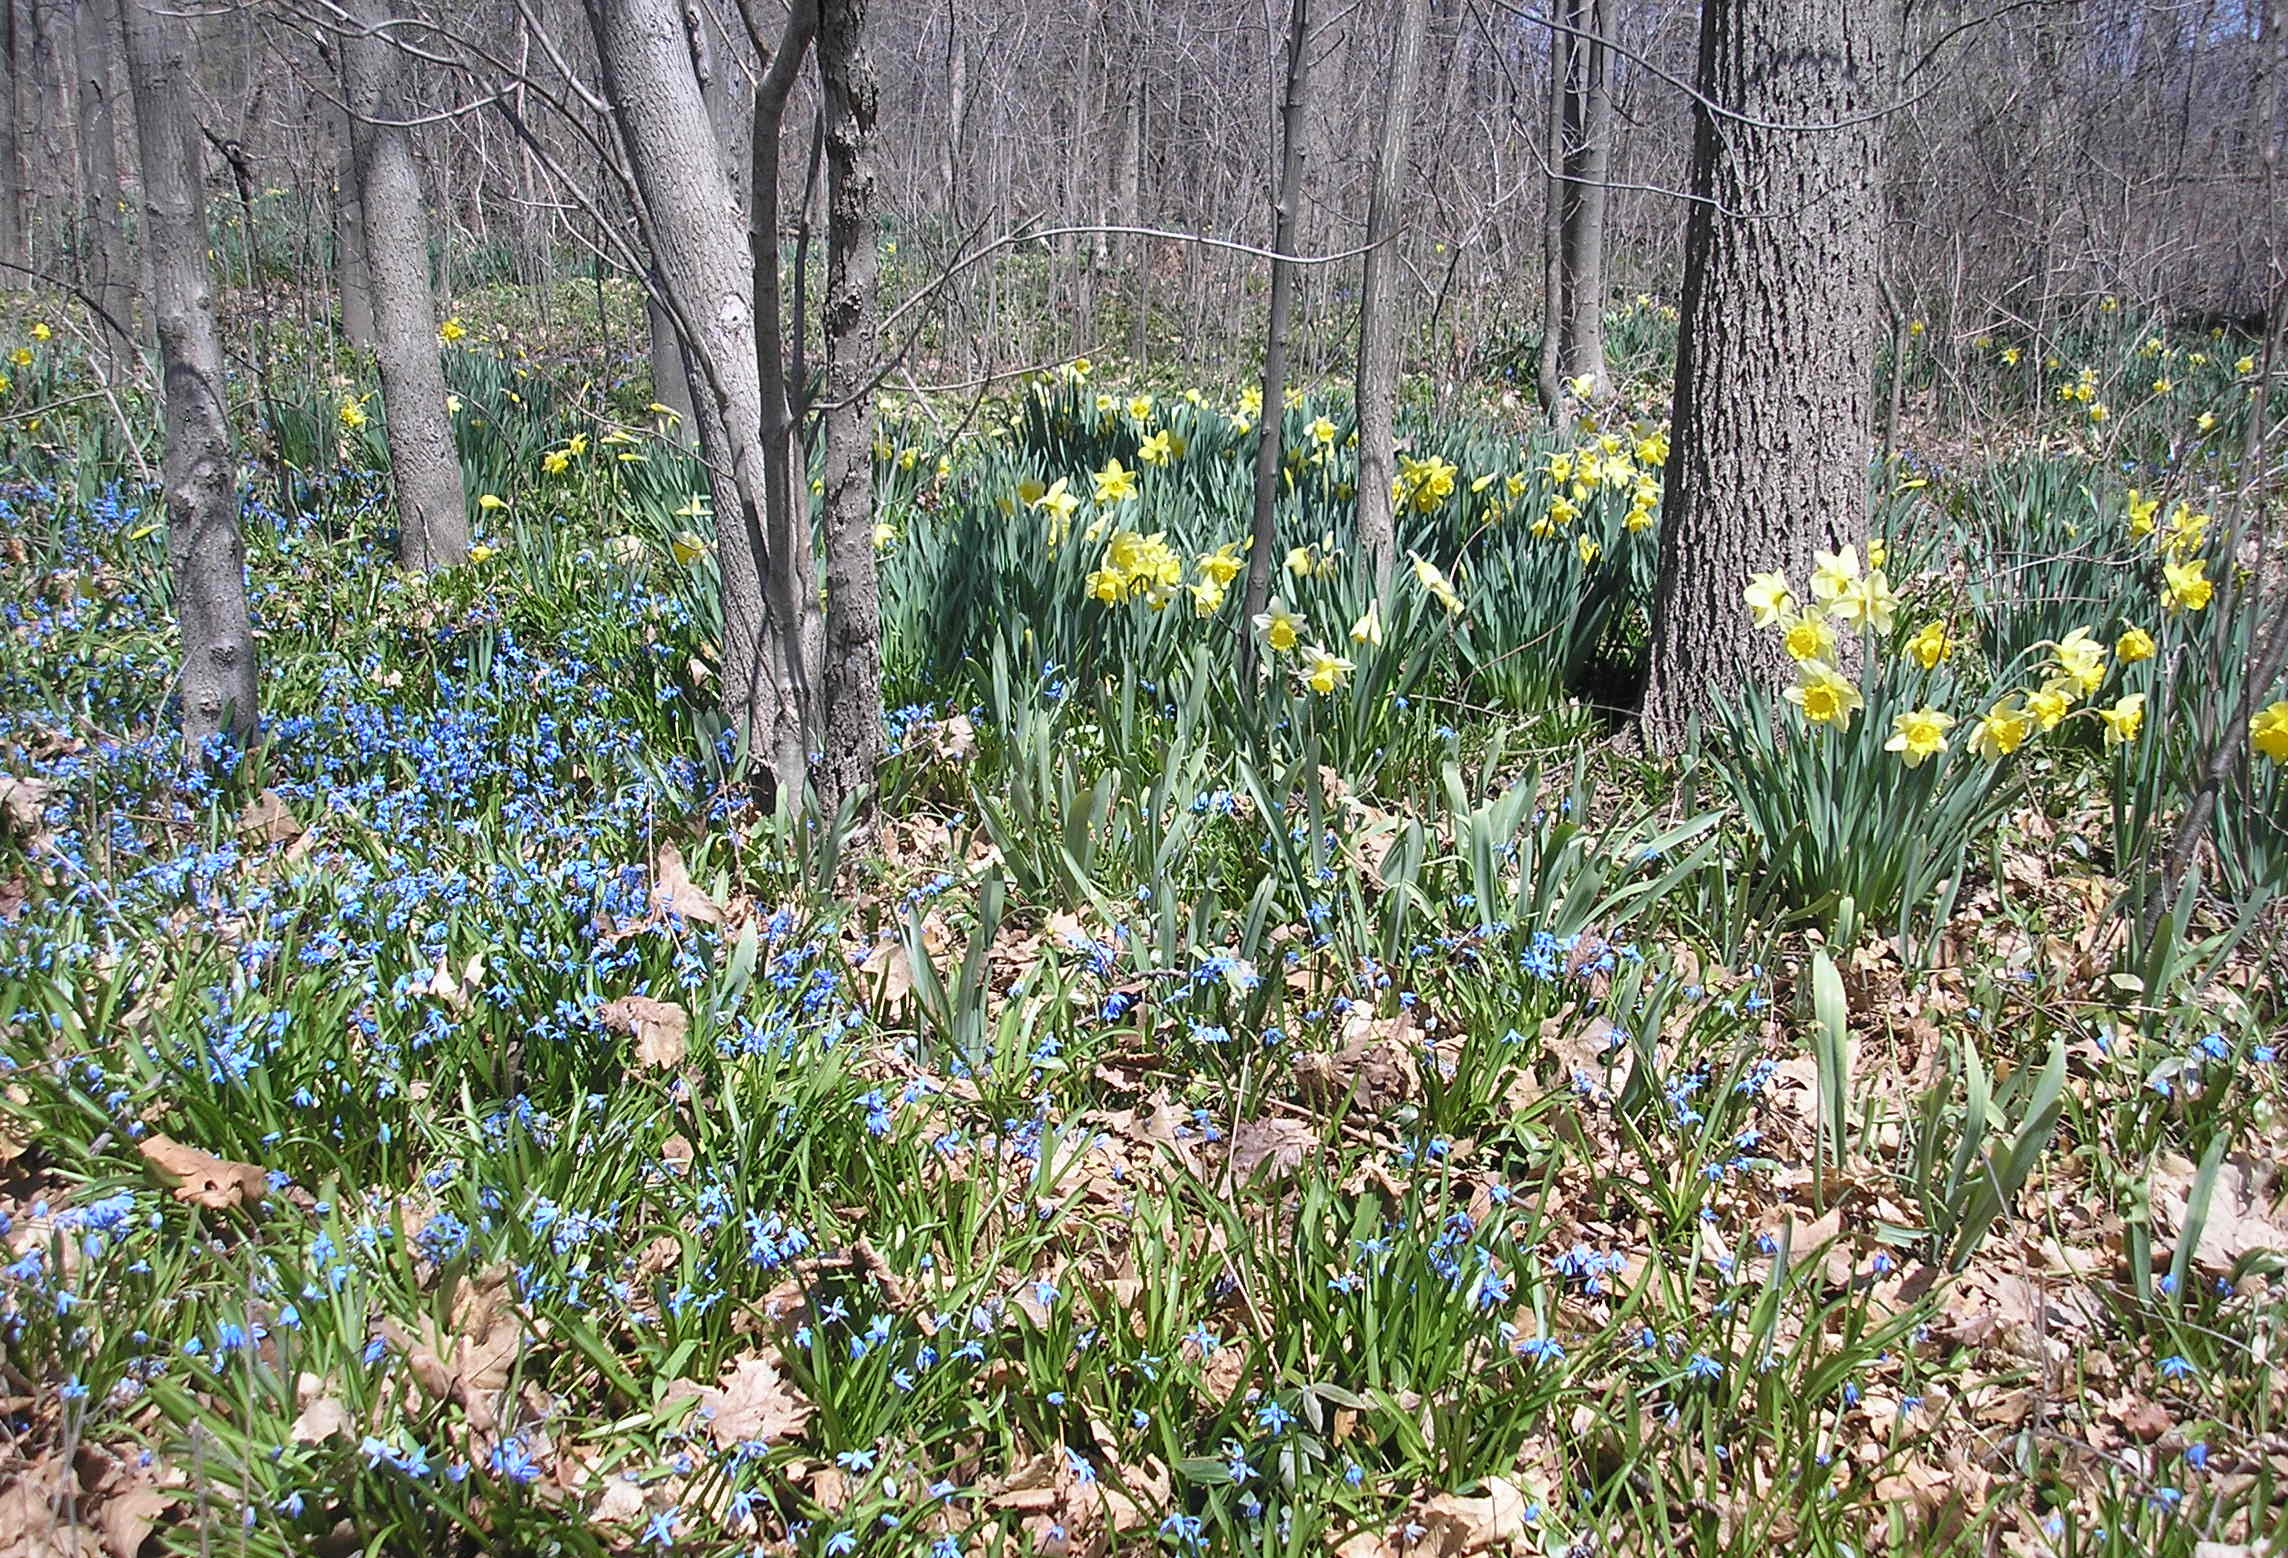 Daffodils & Blue Flowers